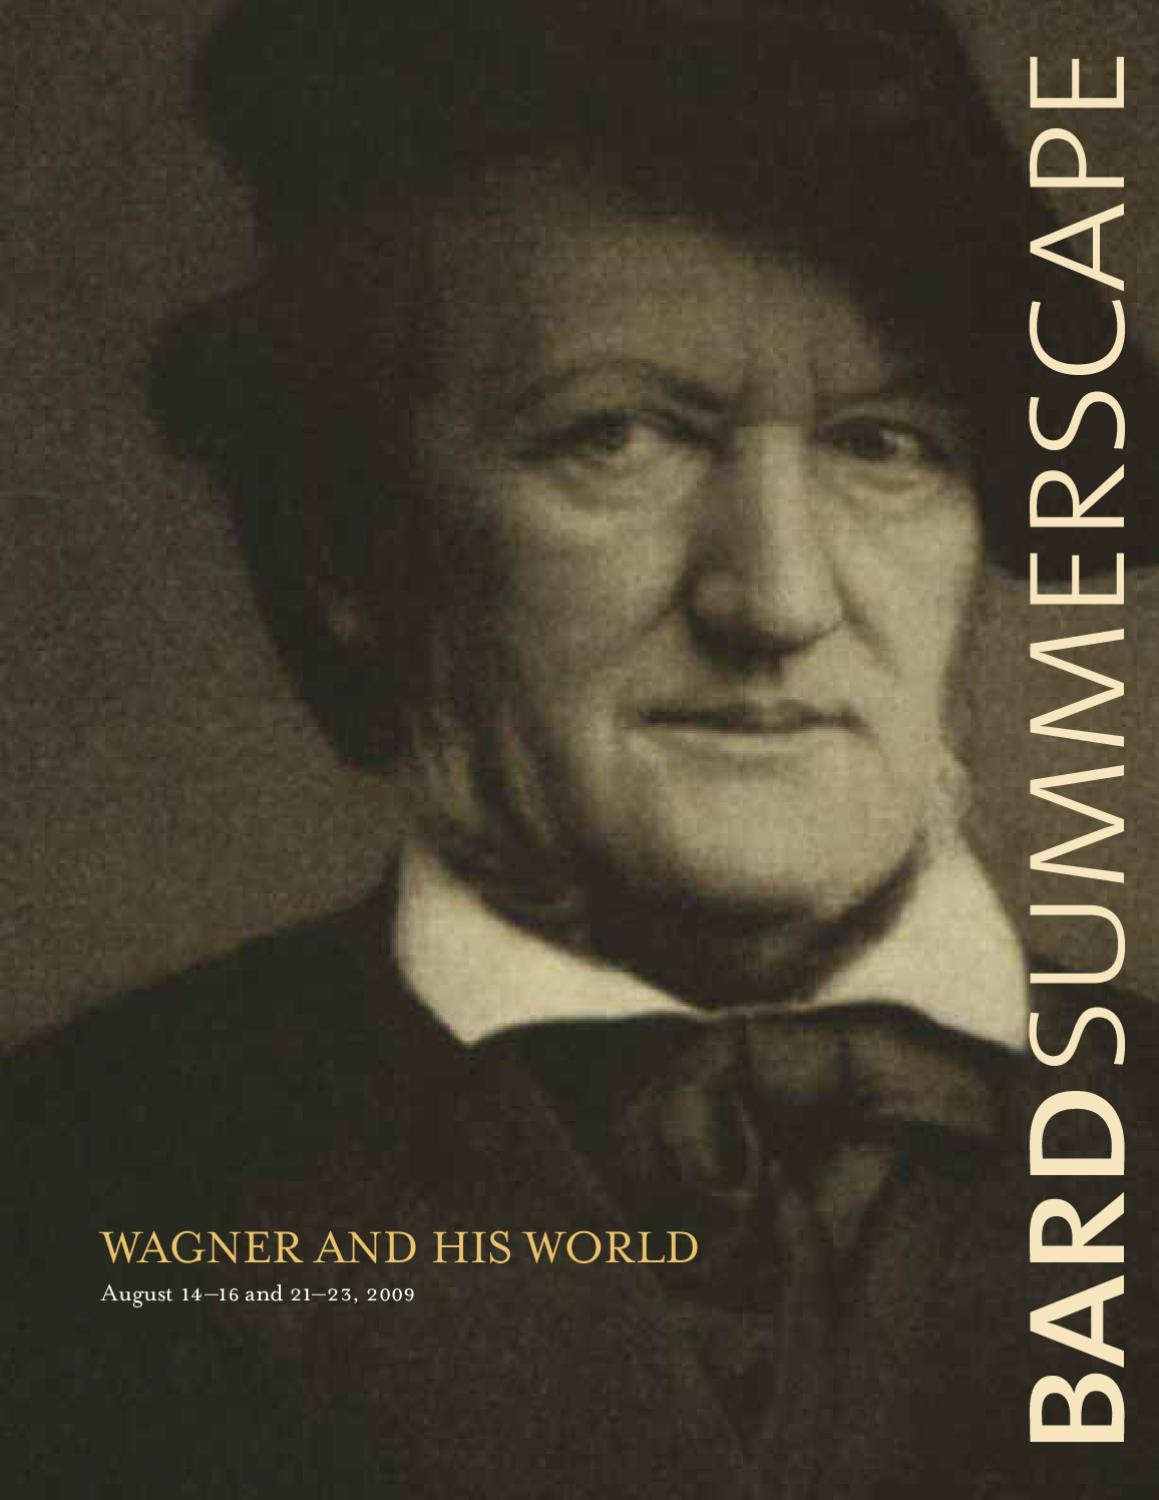 e1090e27a775 2009 Bard Music Festival  Wagner and His World by The Richard B ...